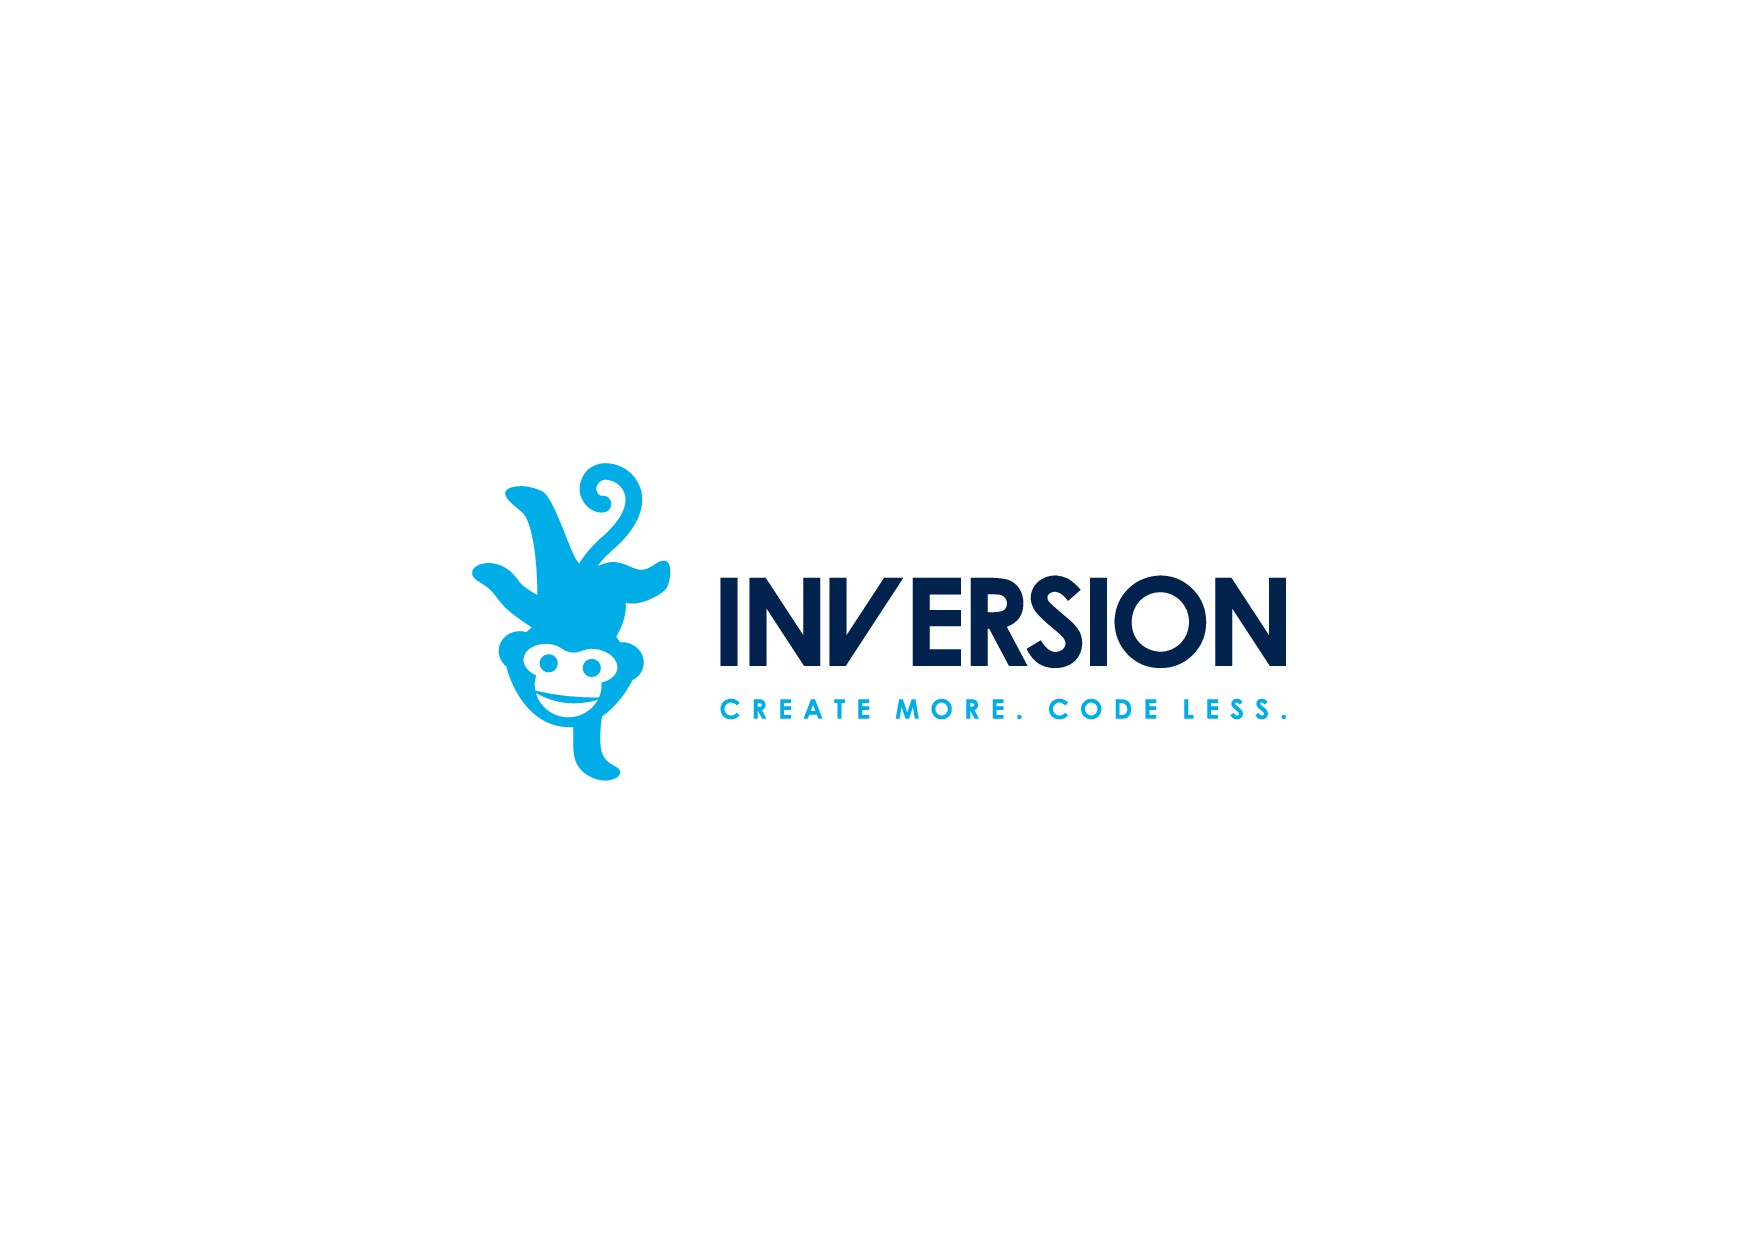 Inversion - Brand a new Open Source project